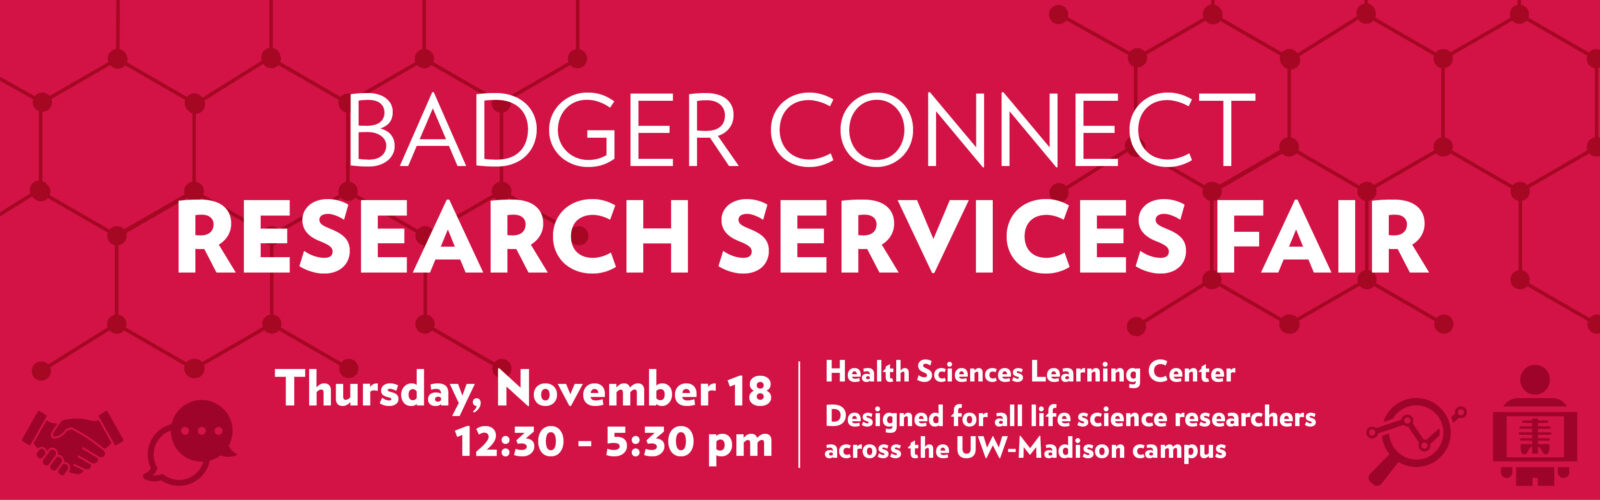 BadgerConnect 2021 Research Services Fair Banner